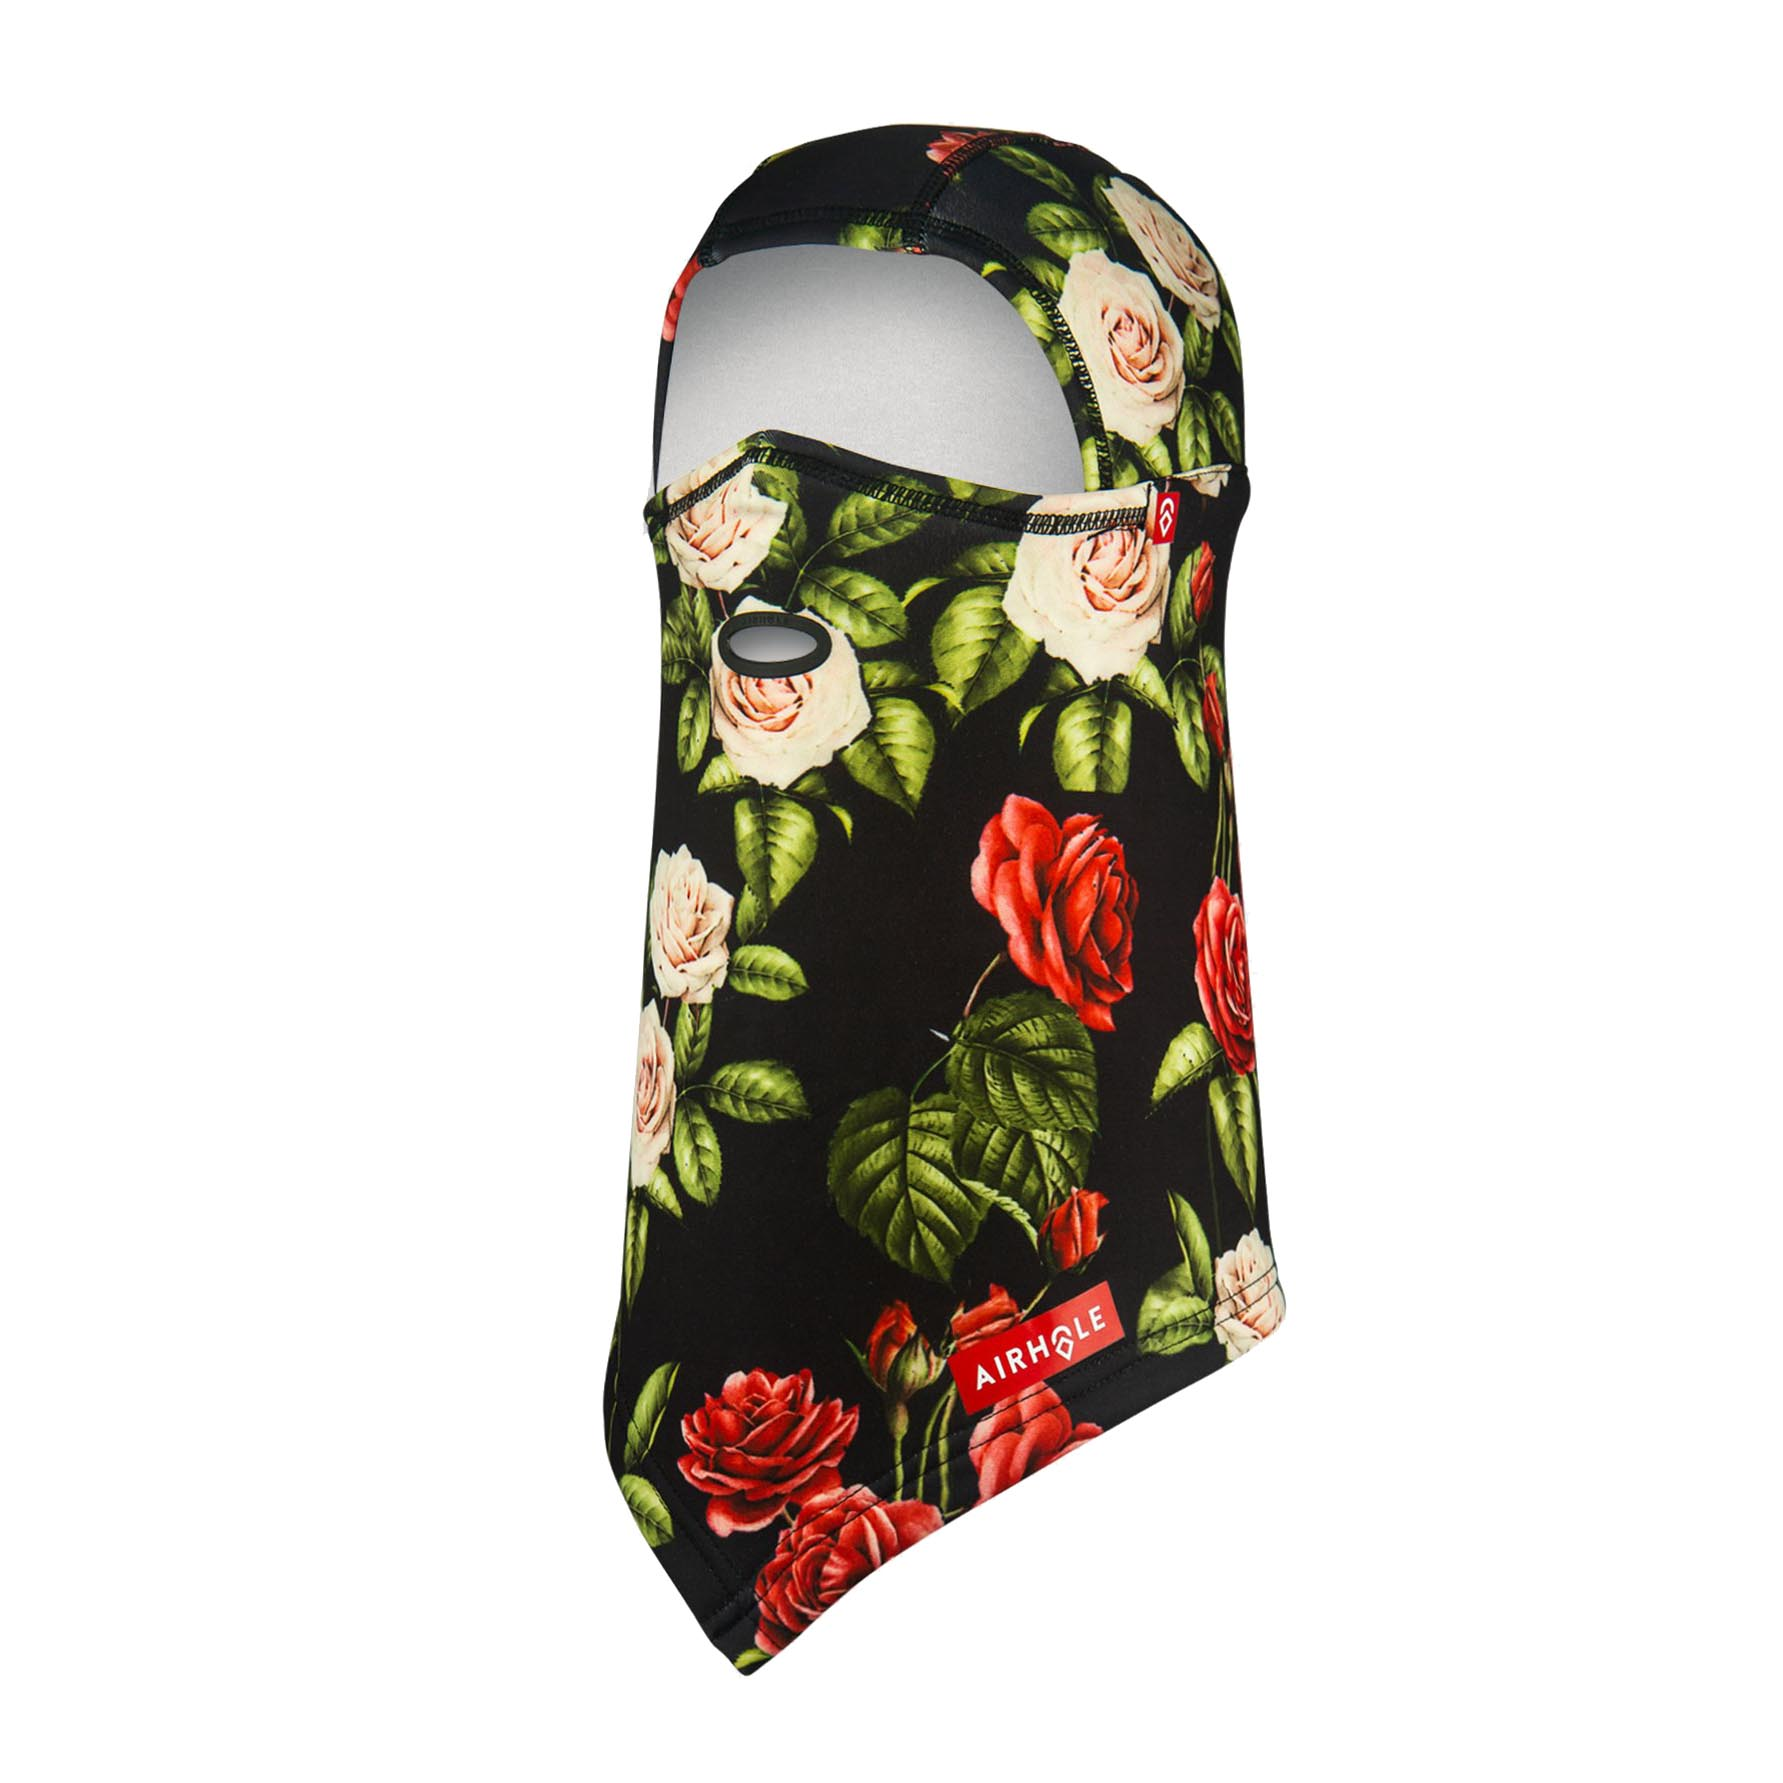 Airhole Hinge Polar Balaclava - Night Rose